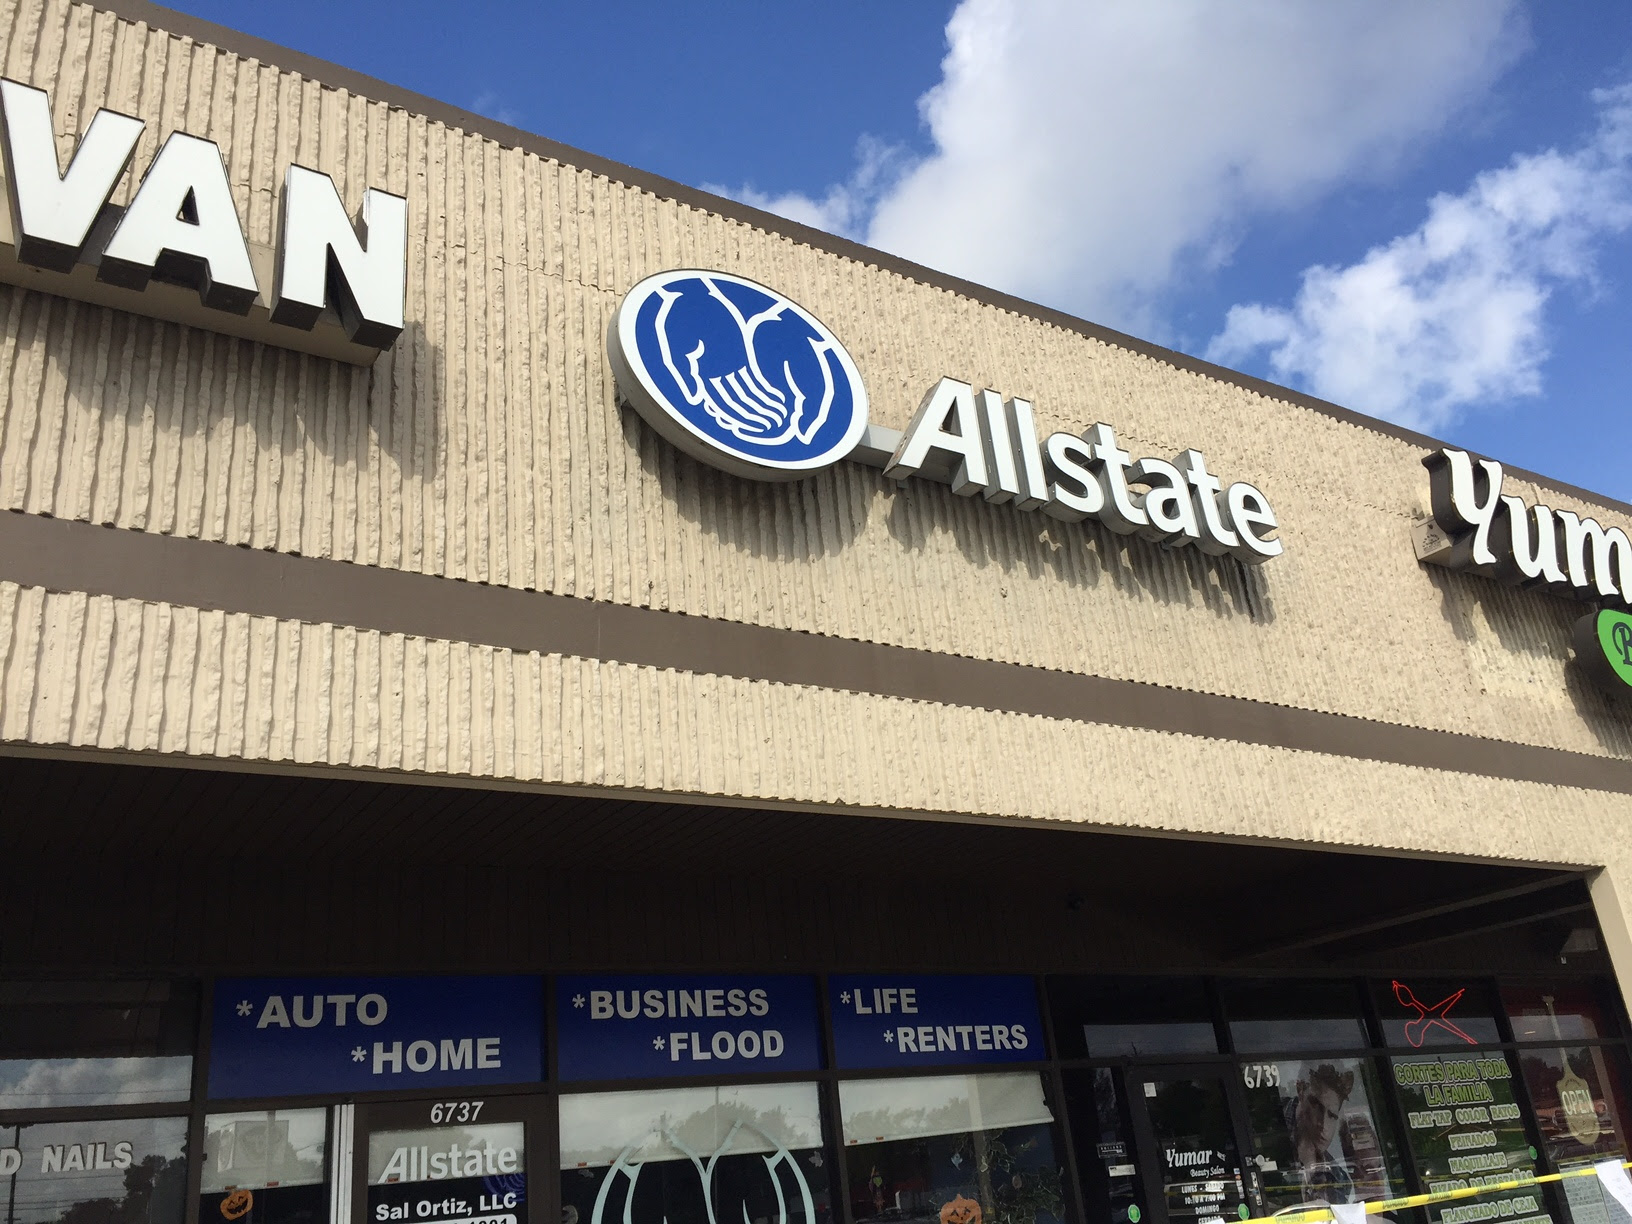 Allstate Insurance Agent: Sal Ortiz at 6737 Airline Dr, Houston, TX on Fave